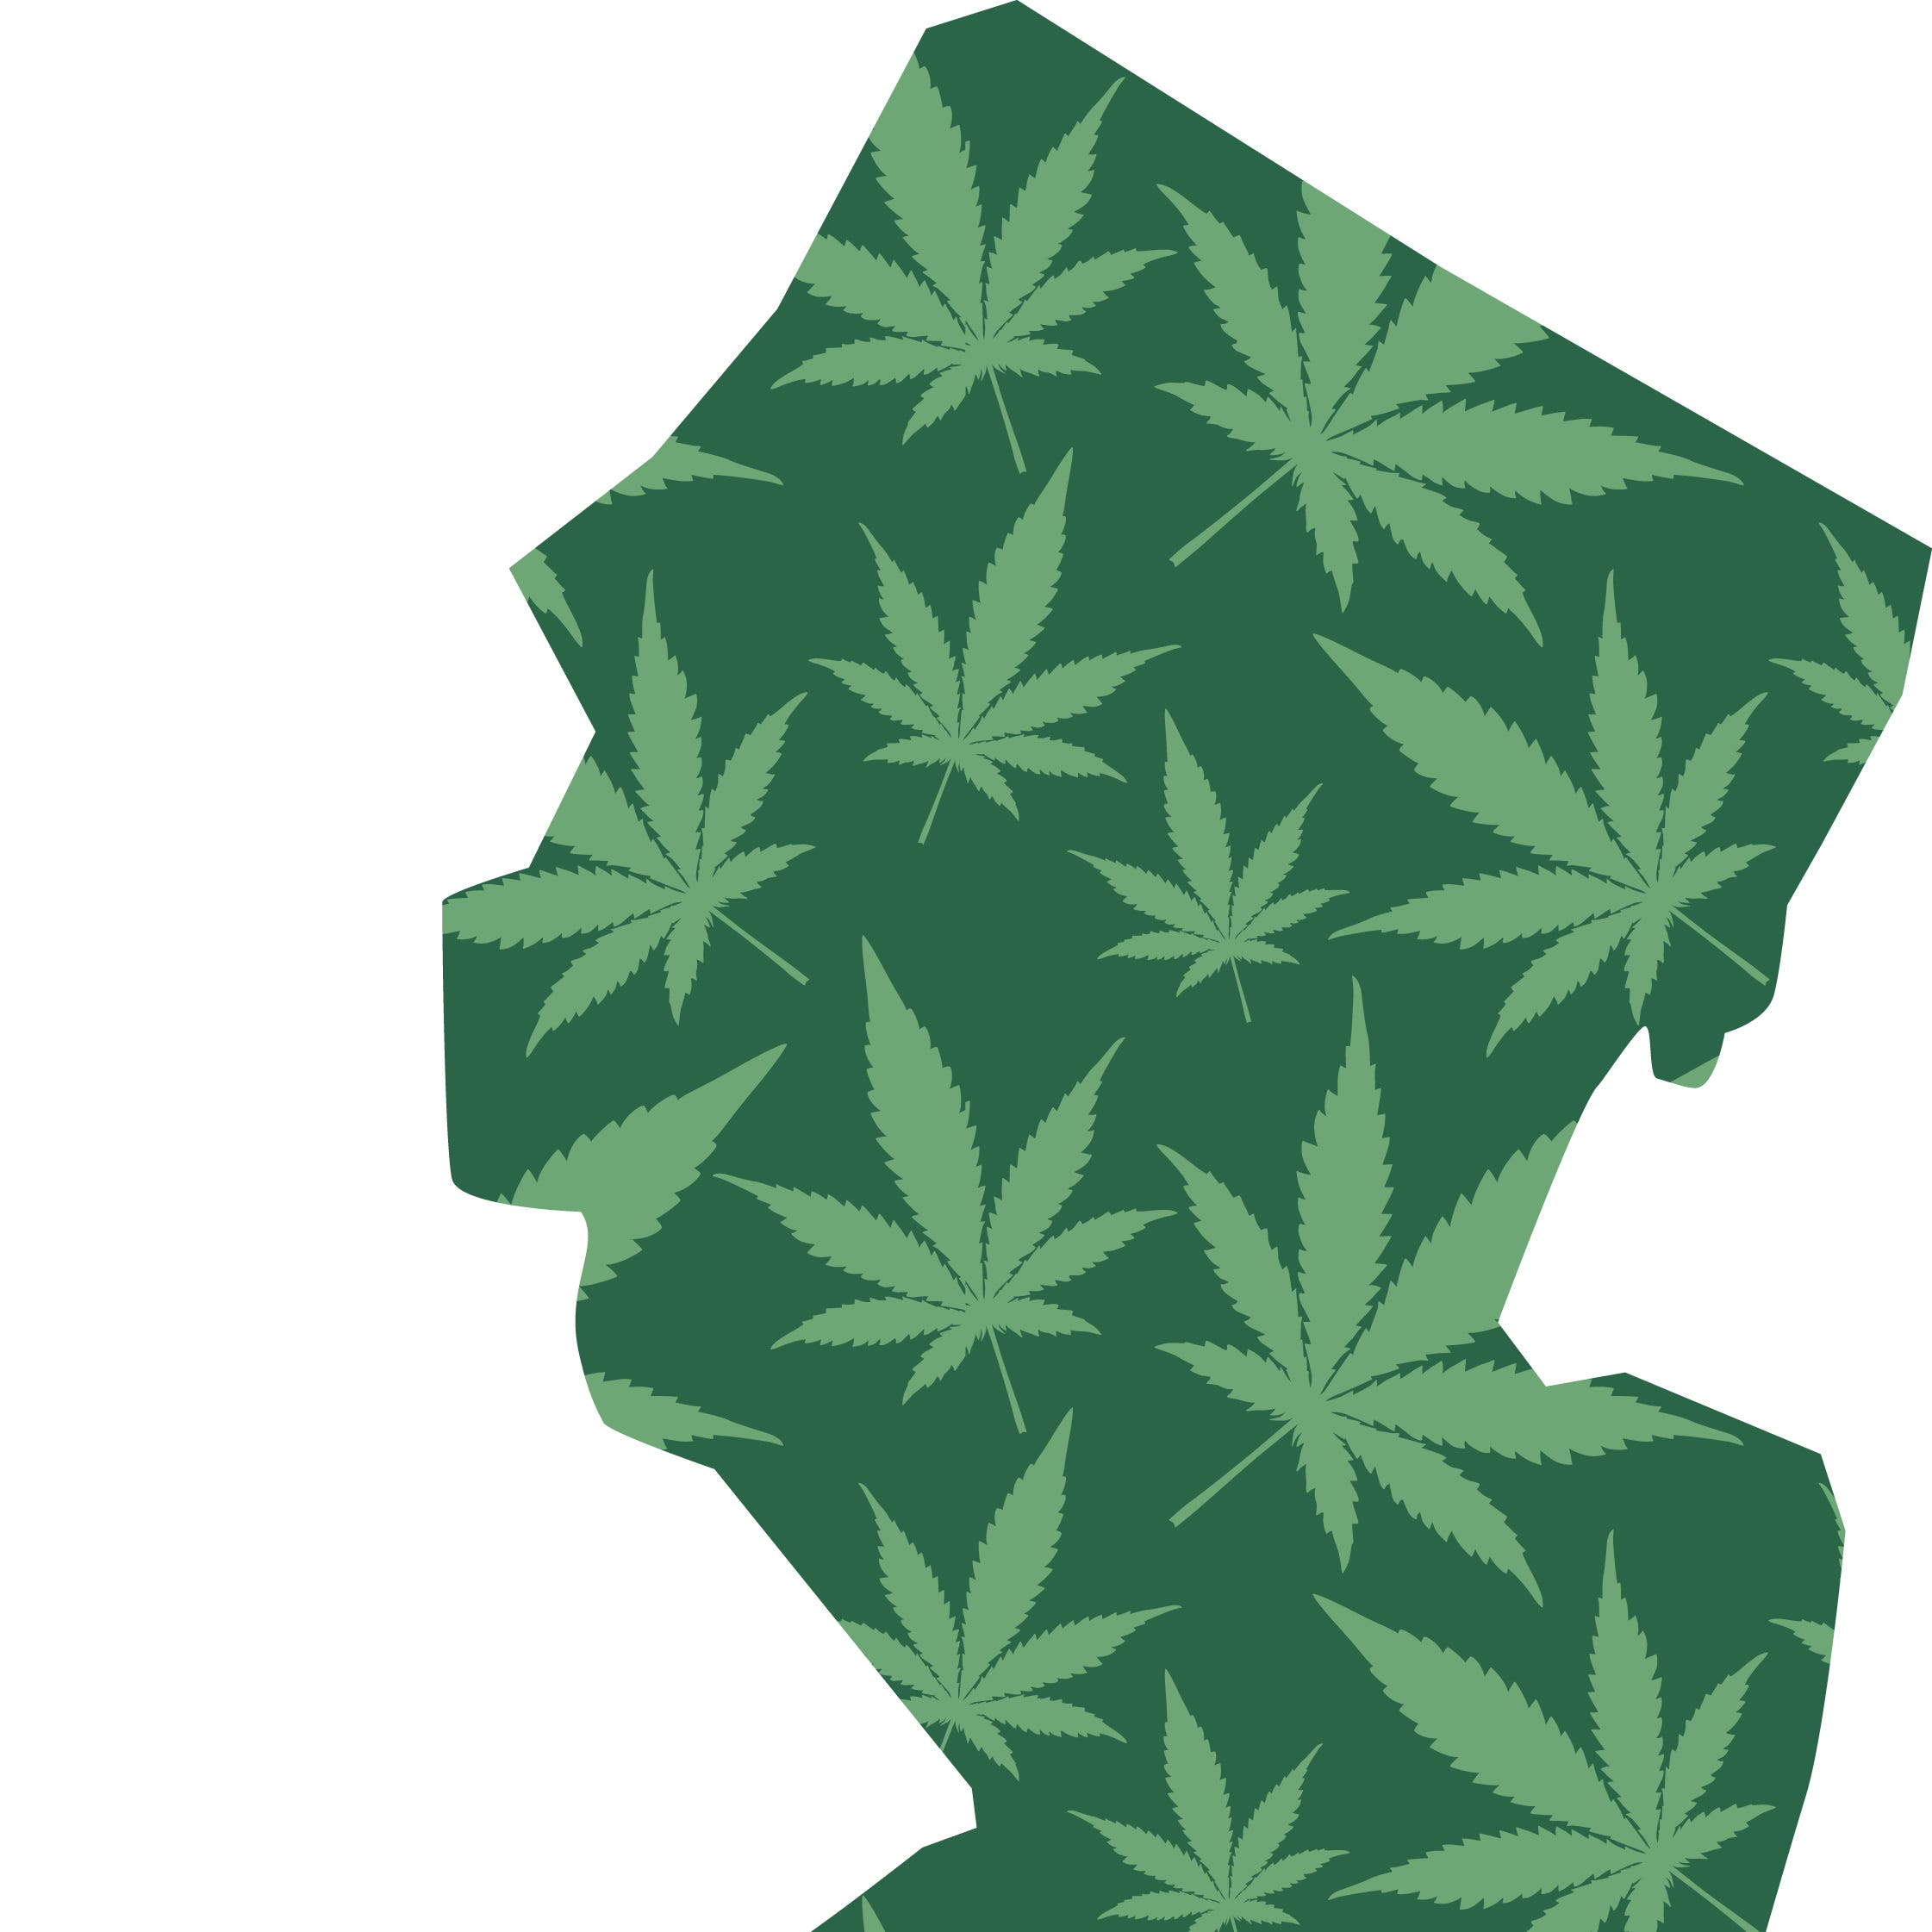 NJ marijuana legalization: Stop recreational marijuana in New Jersey